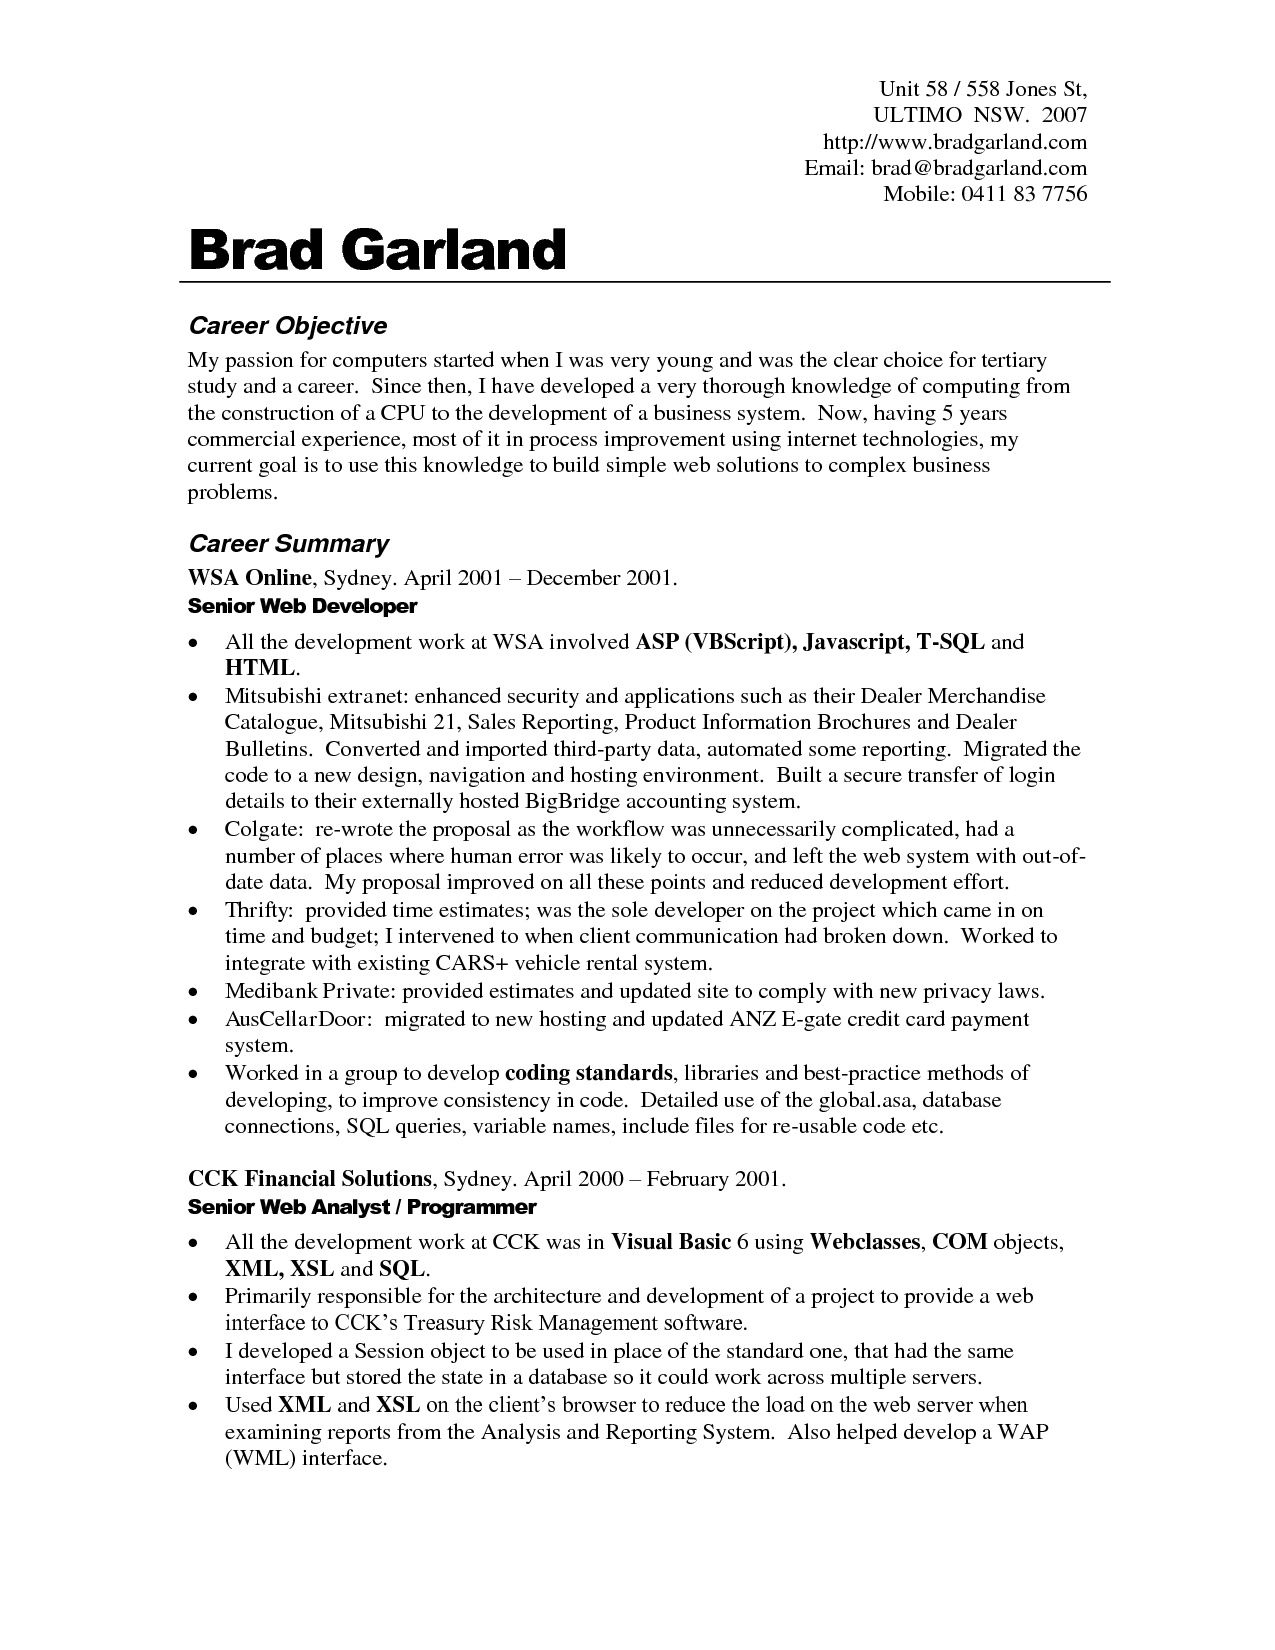 Career Objective Resume Examples For Example Your Training Goals And  Objectives Rufoot Resumes  Objective On Resume